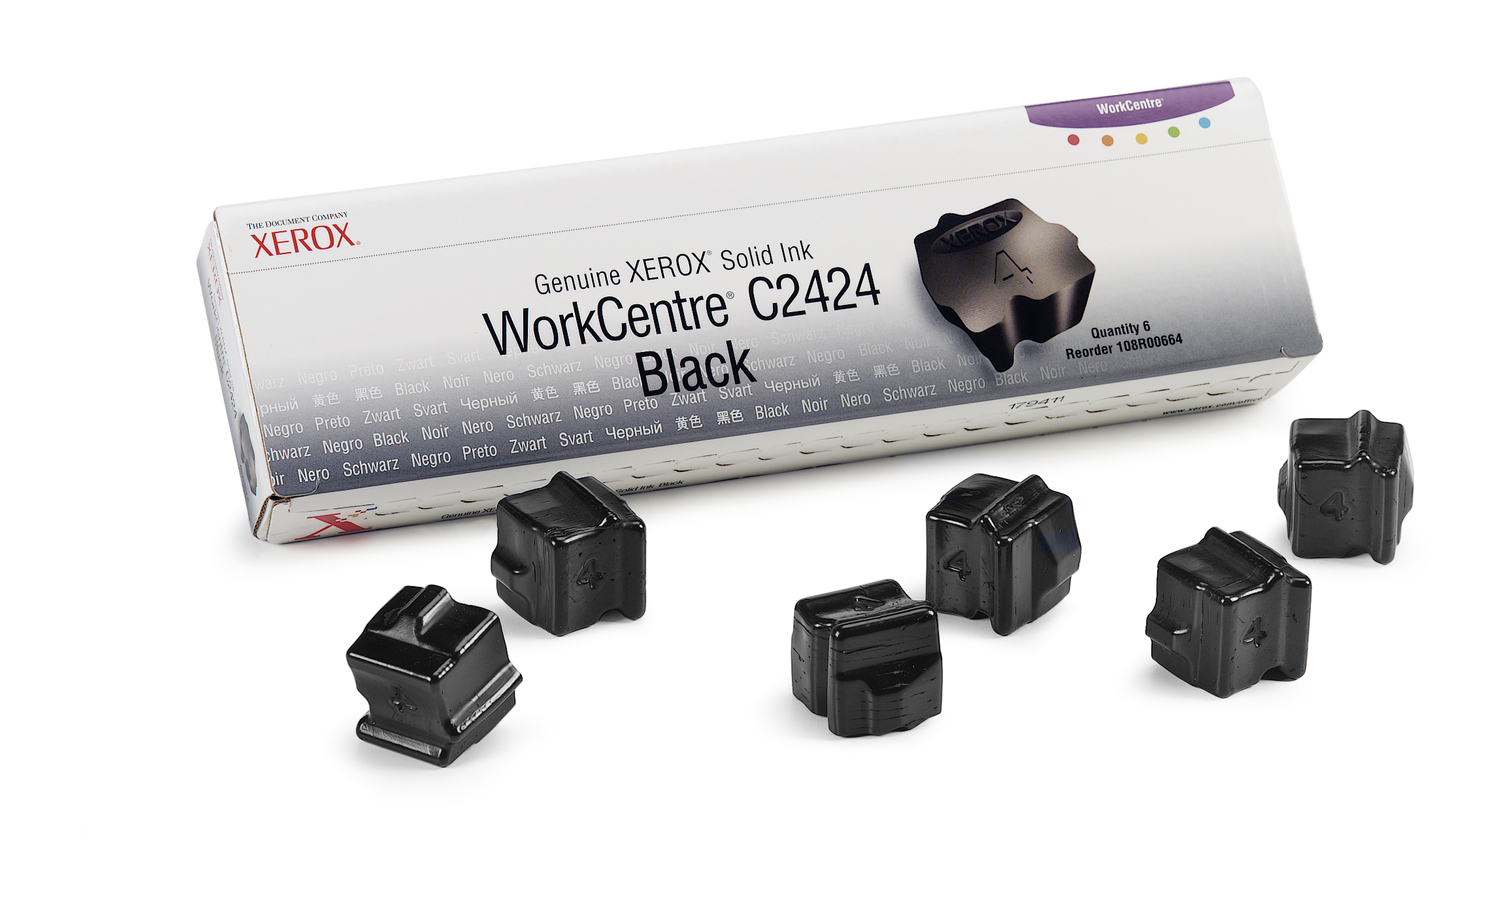 Xerox Genuine WorkCentre C2424 Solid Ink Black (6 sticks)